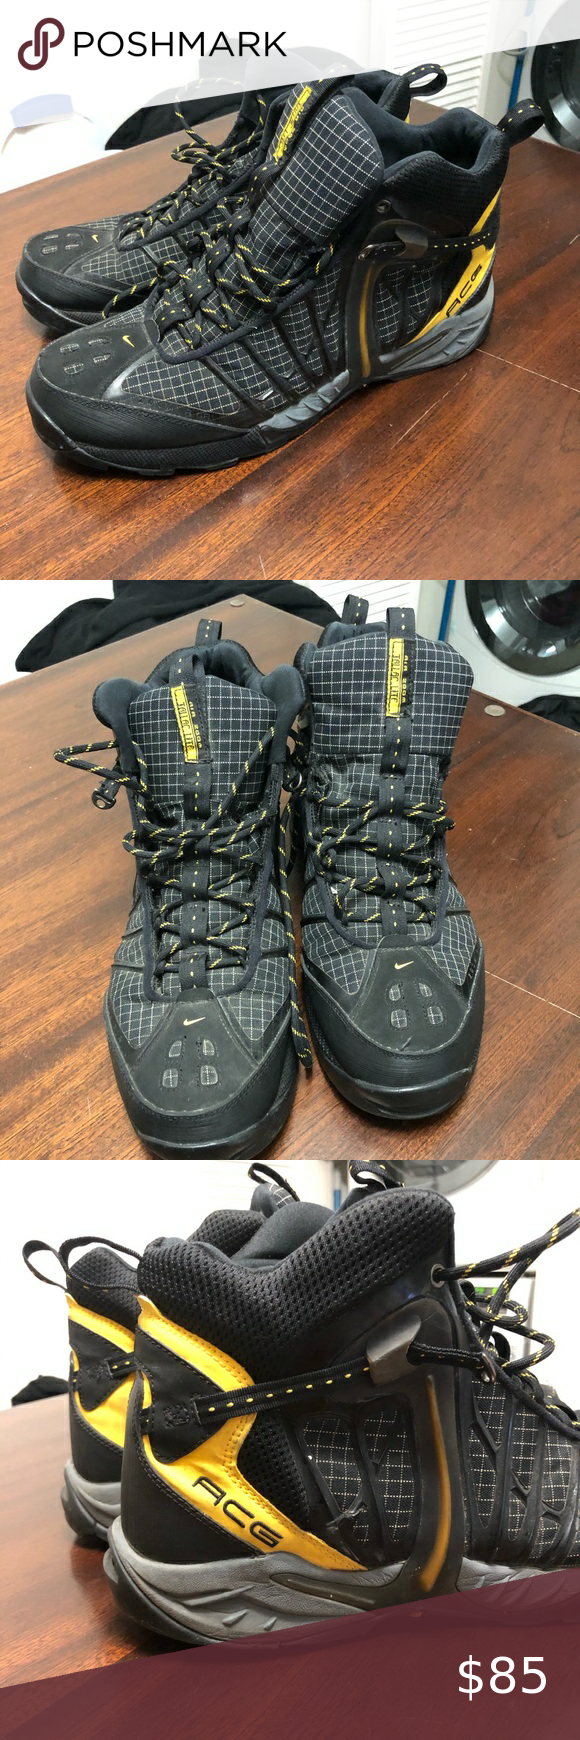 enlazar multa Muñeco de peluche  RARE Nike ACG Air Zoom Tallac Lite Boot Sz 13 Boots have barely any wear or  creasing. Extremely hard to find in this size, price, an… in 2020   Boots,  Rare nikes, Nike acg